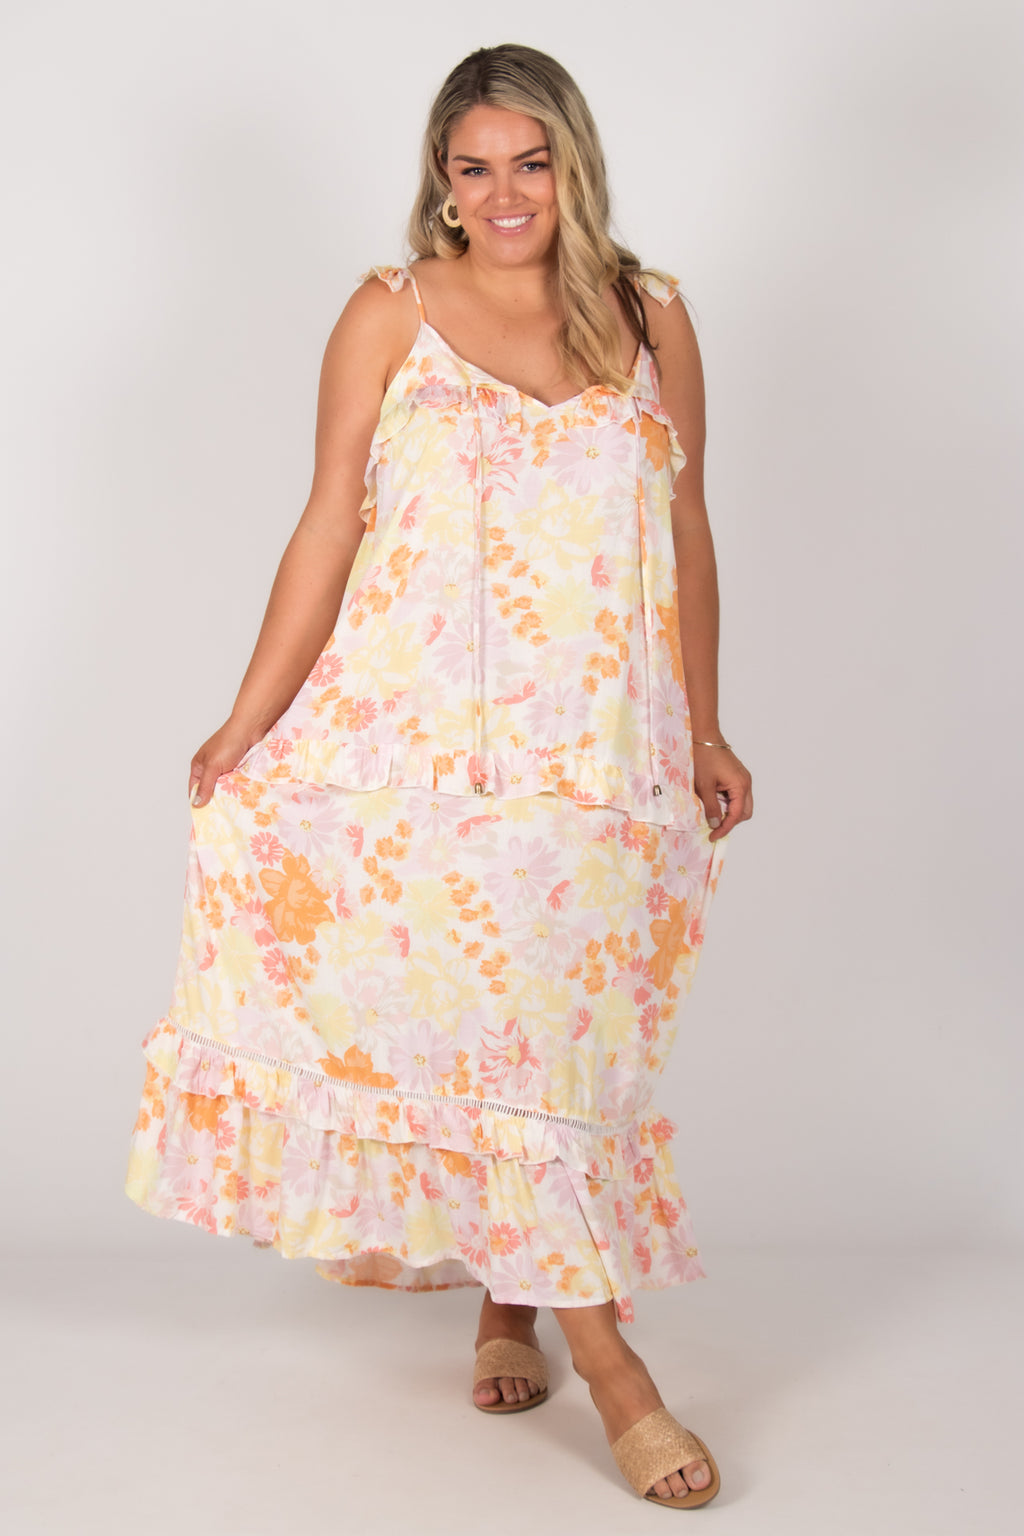 Jade Dress in Pastel Floral